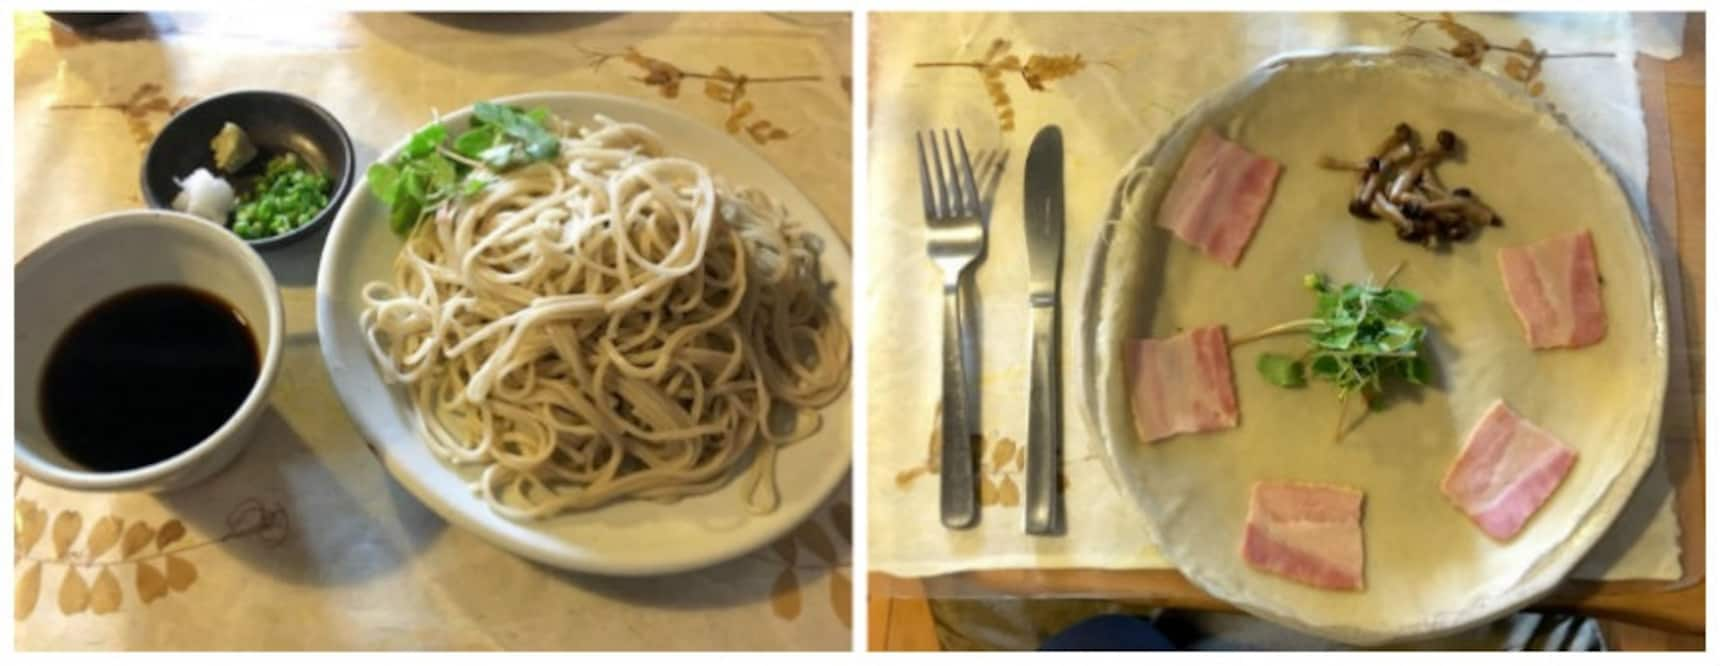 A Delicious 3-Course Meal Featuring Soba!